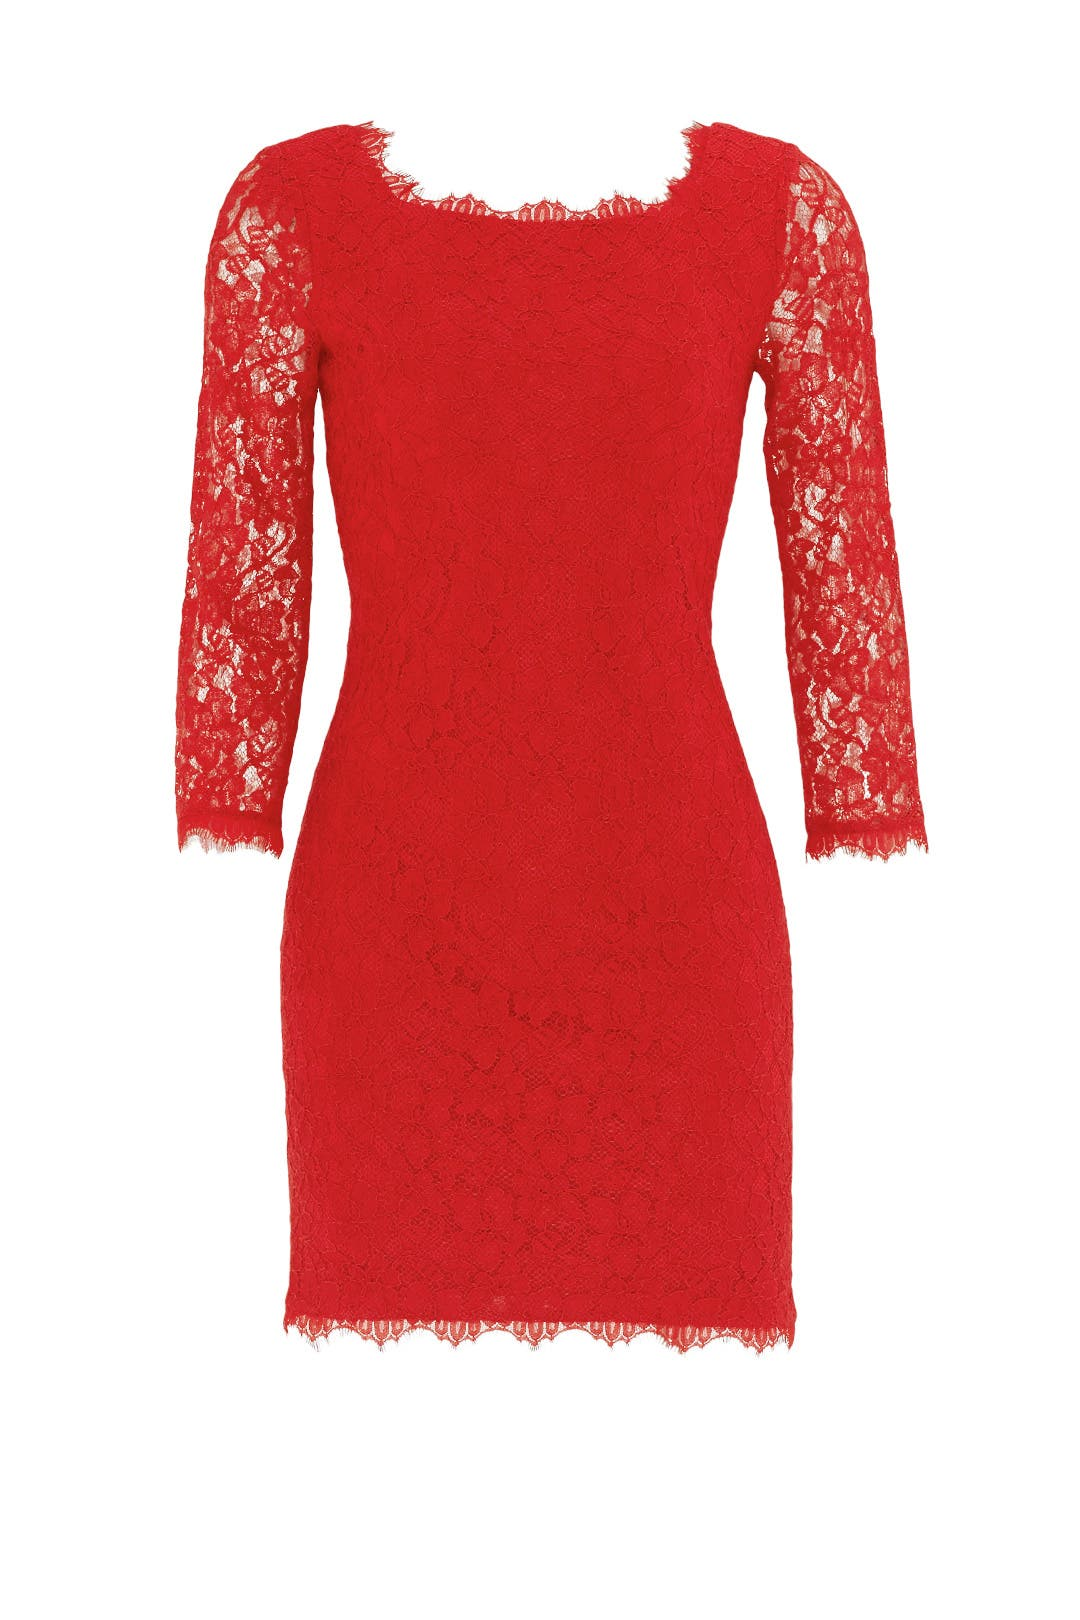 Red sheath dress: the best combinations, features of choice and recommendations 26